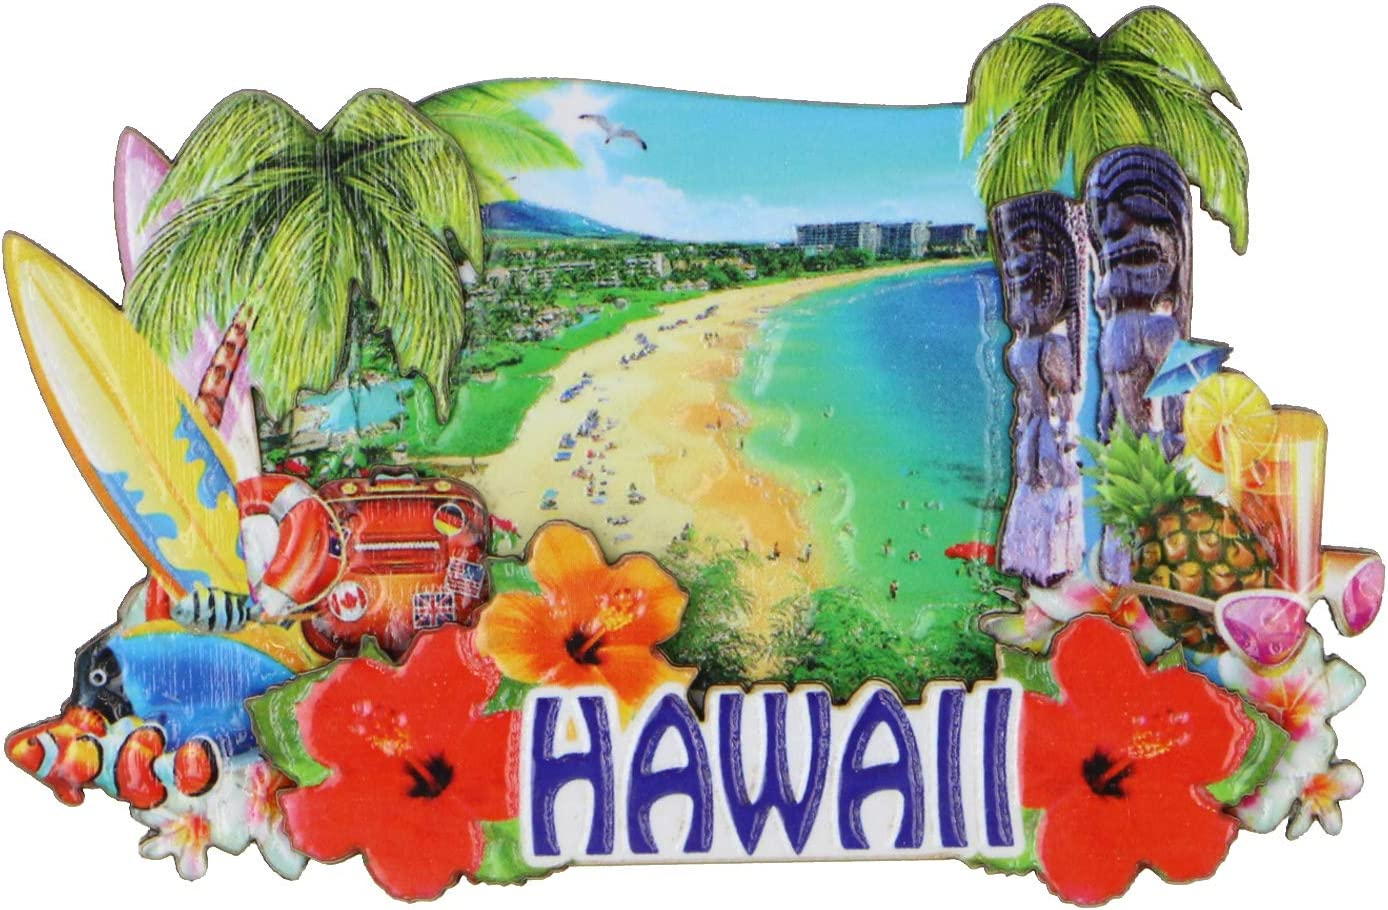 3D Hawaii Magnet Souvenir with Beach and Icons 4 Inches